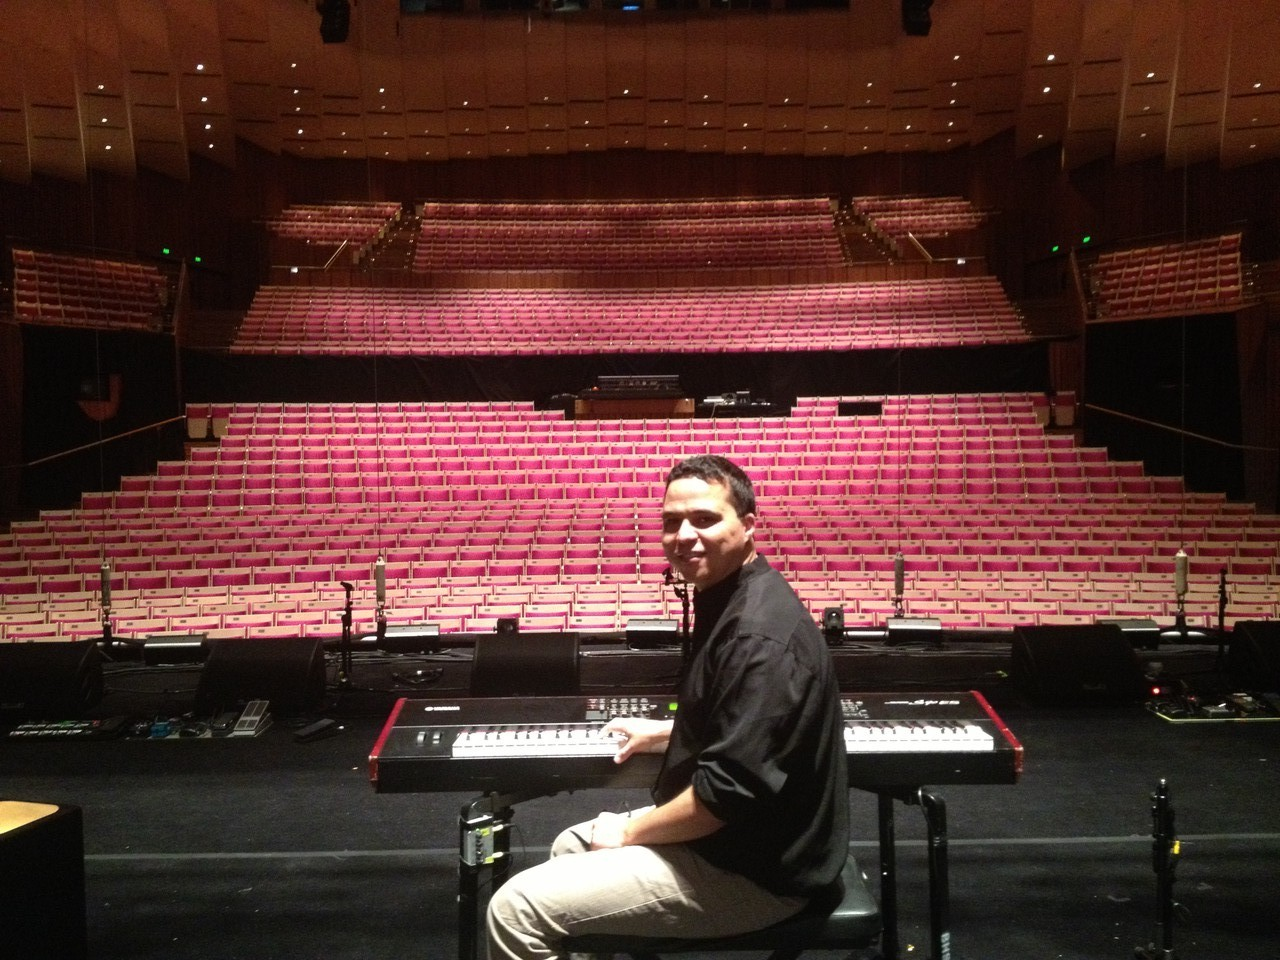 What an amazing venue! — at Sydney Opera House.